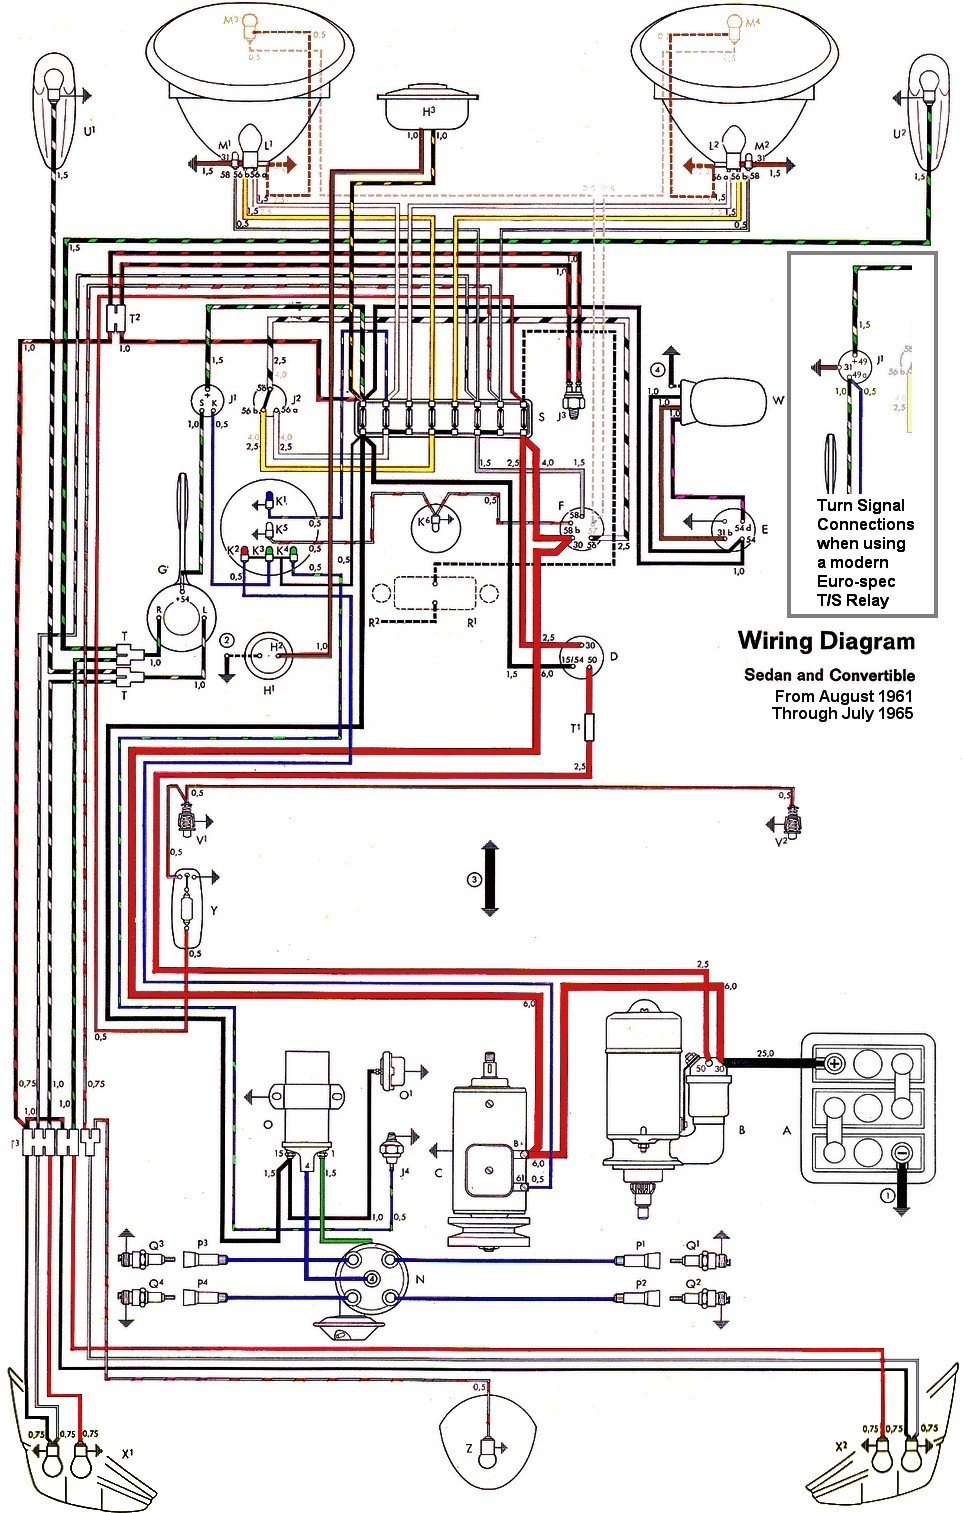 bug_62 65withinset thesamba com type 1 wiring diagrams 1973 vw wiring diagram at pacquiaovsvargaslive.co